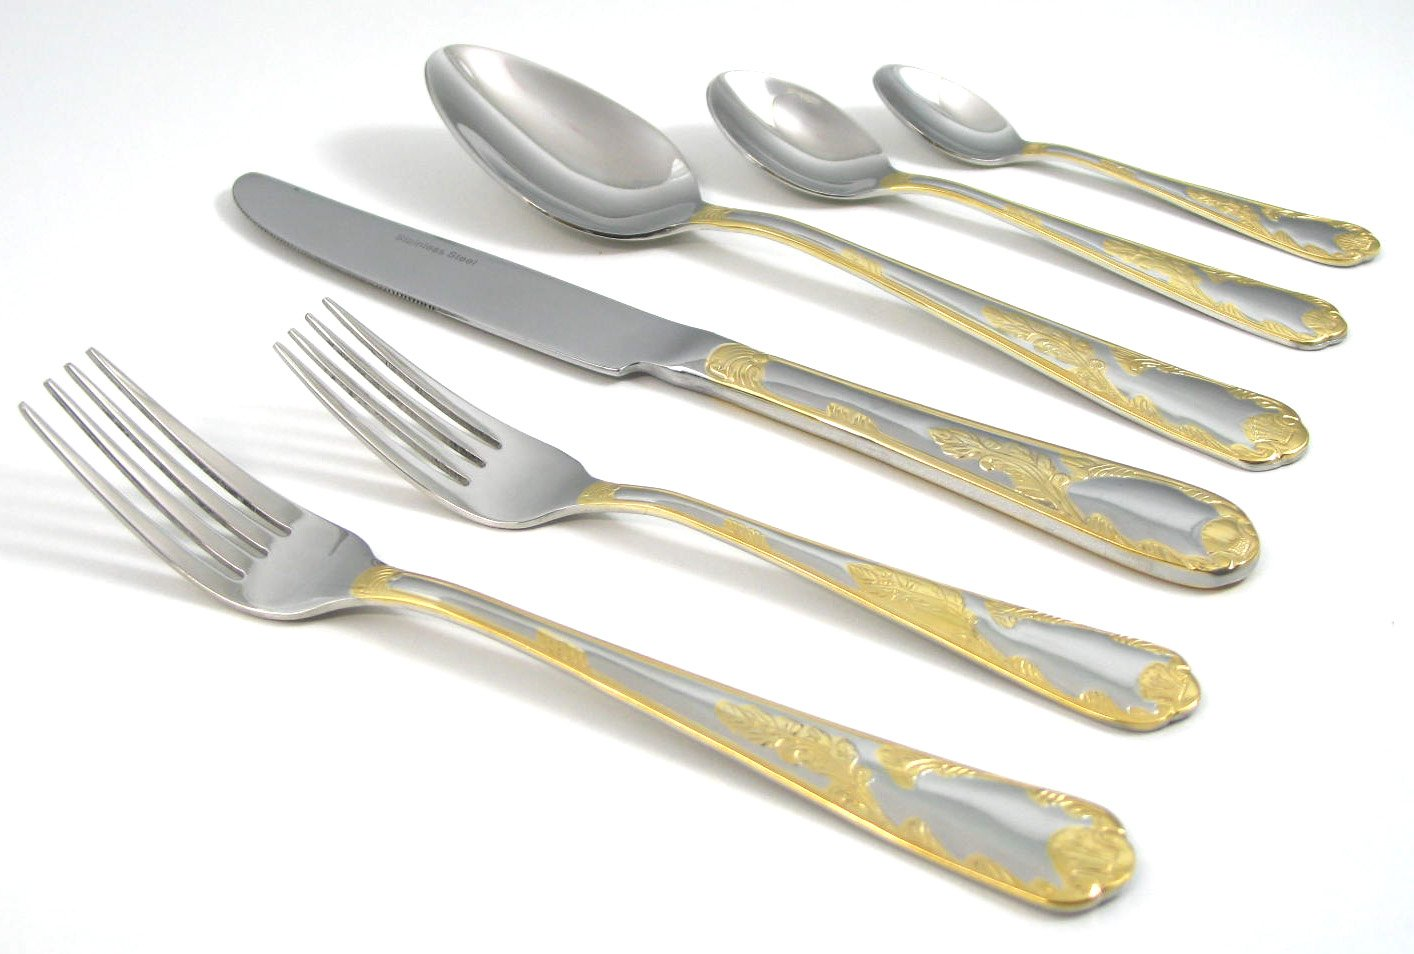 Venezia Collection 75-Piece Fine Flatware Set, Silverware Cutlery Dining Service for 12, Premium 18/10 Surgical Stainless Steel, 24K Gold-Plated (gold sets only) Hostess Serving Set (Provenza)